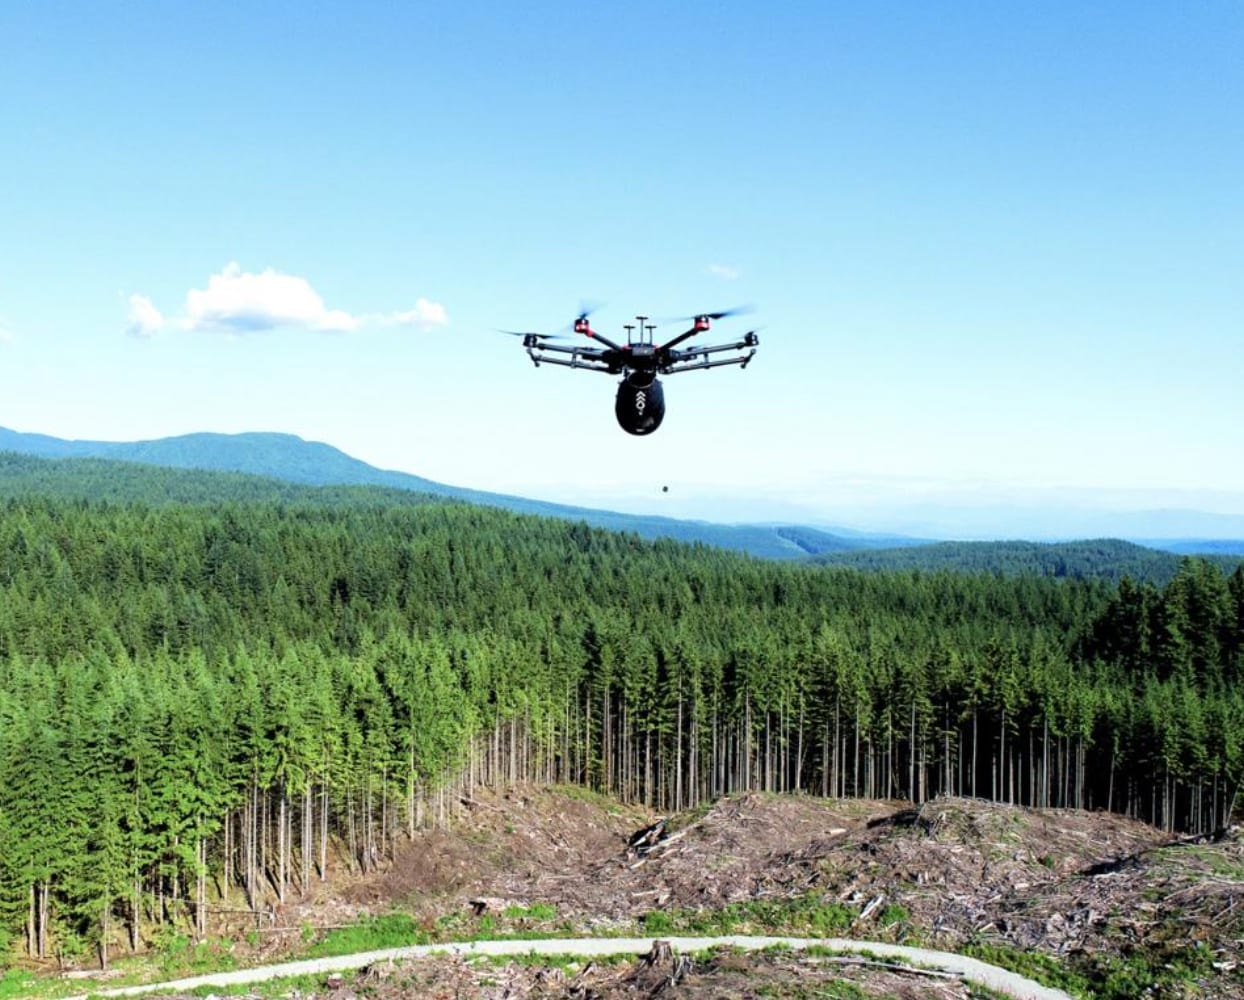 The drones from the Canadian company, Flash Forest can plant trees 10 times faster than humans. The company uses the latest drone technology in combin